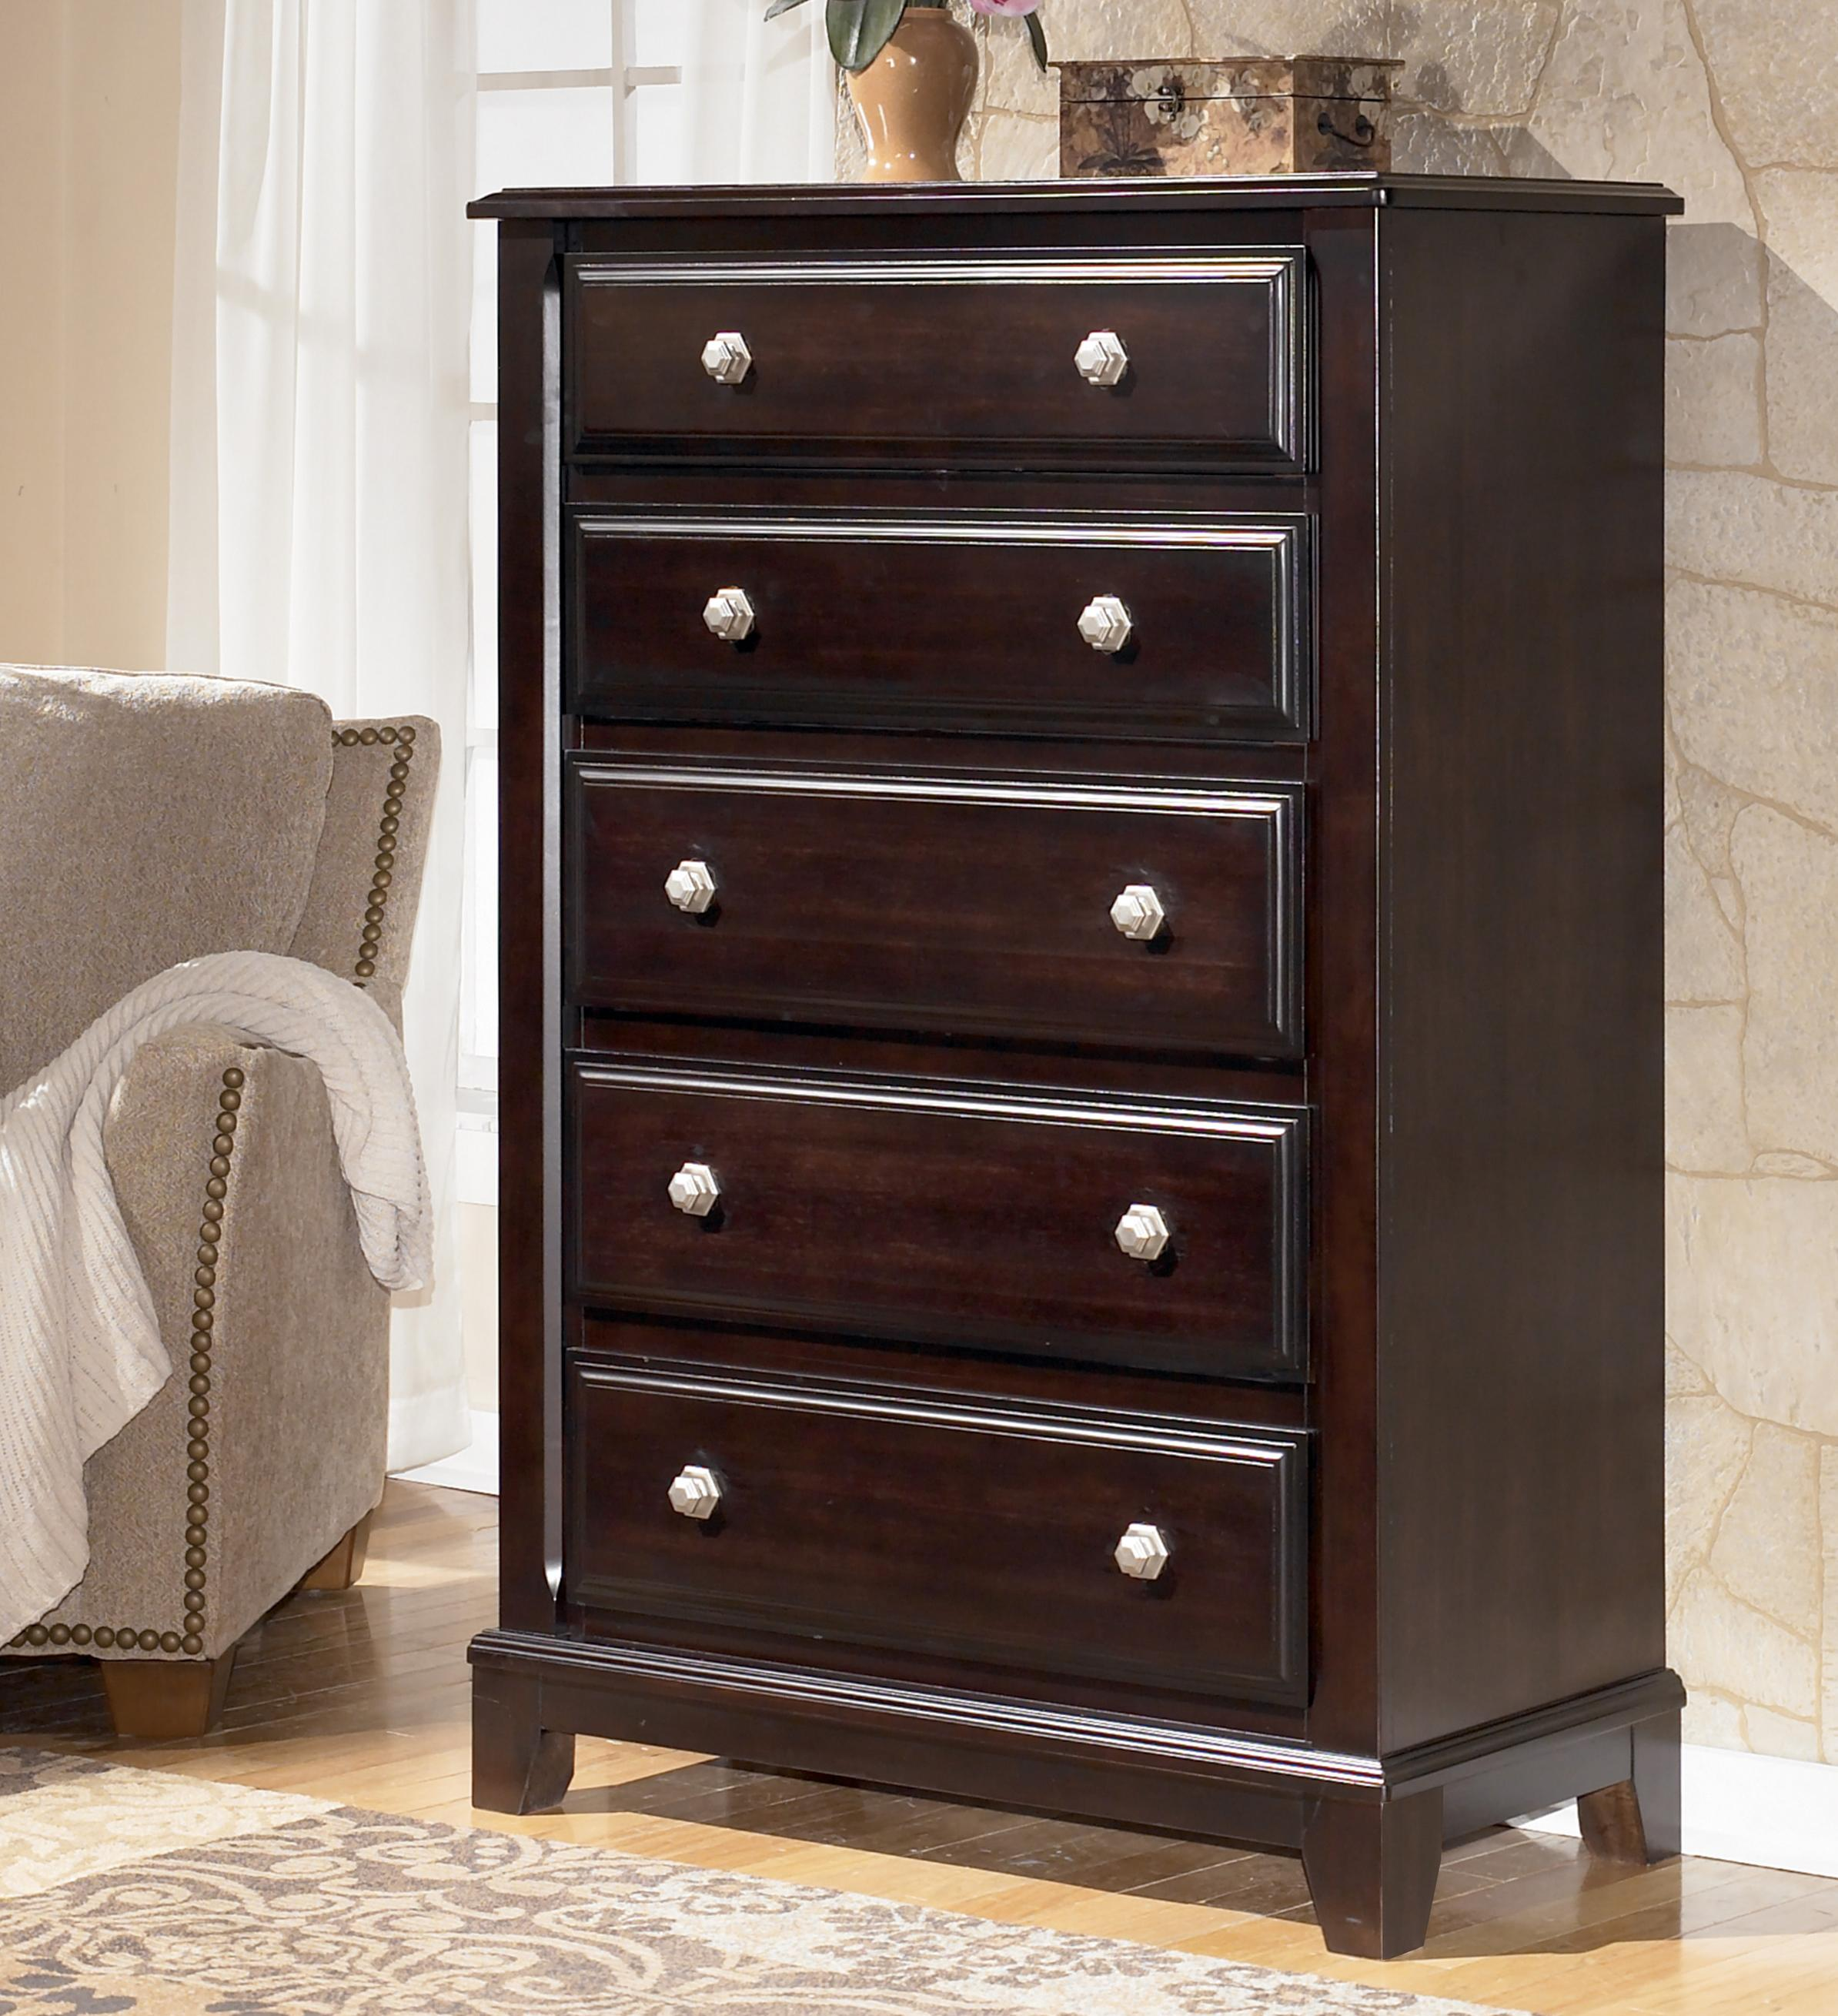 Signature Design by Ashley Ridgley Chest - Item Number: B520-46